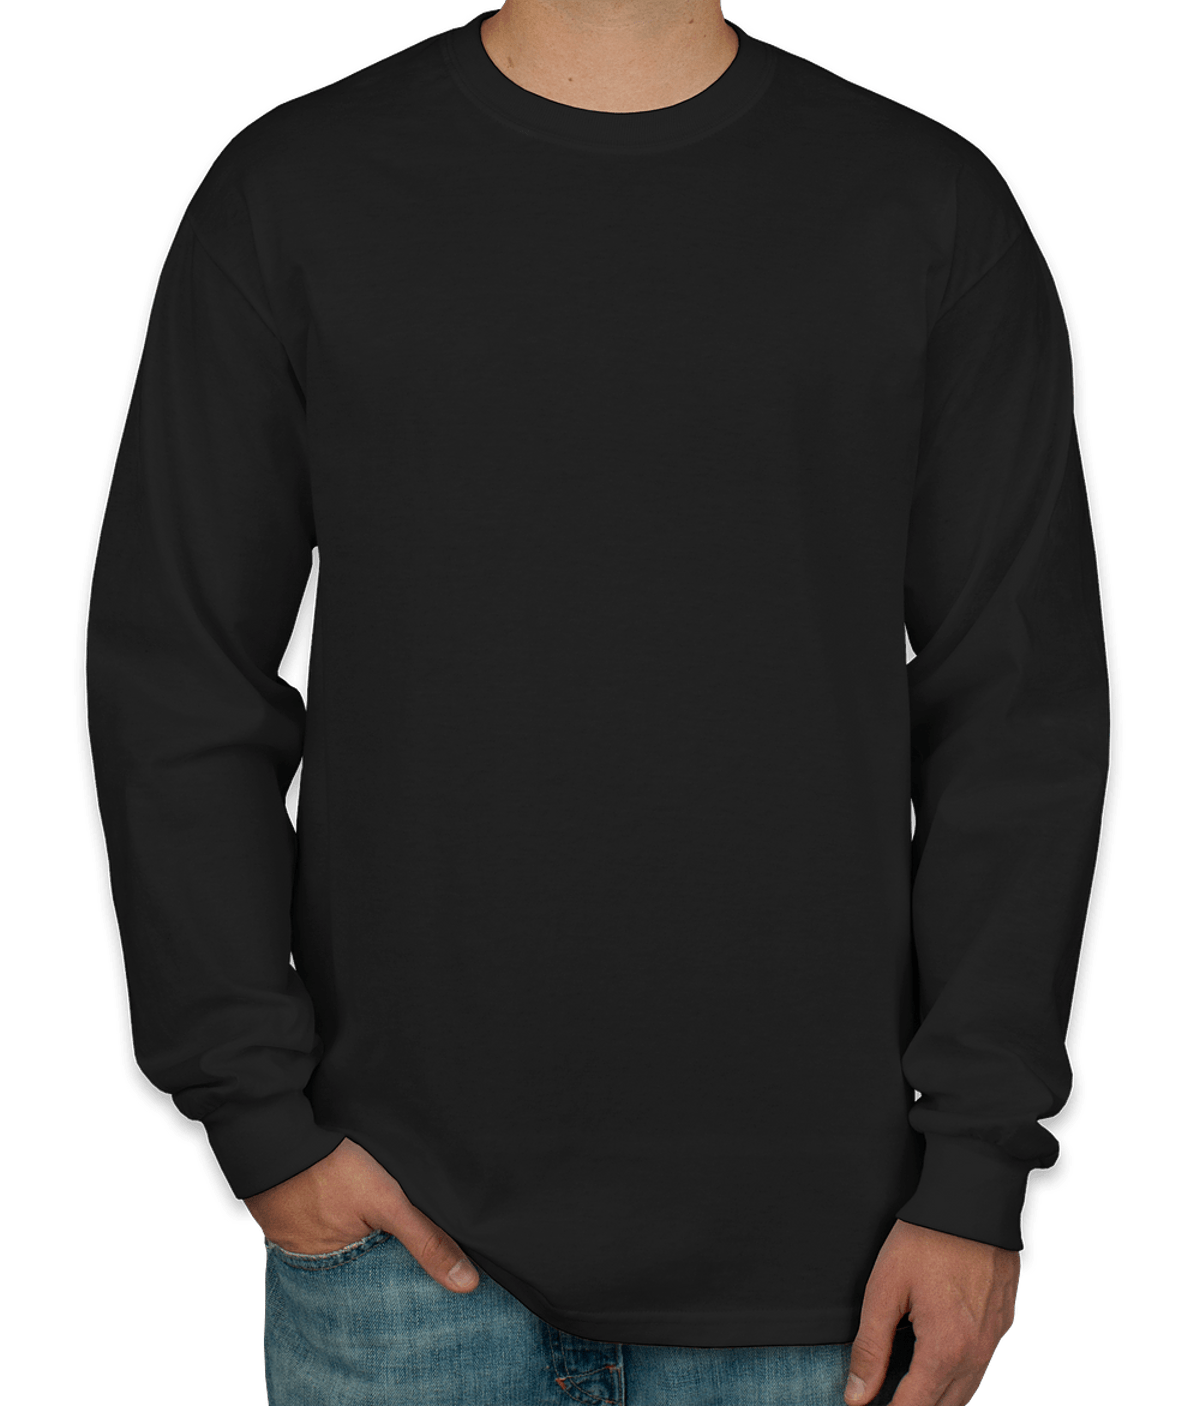 Youth Hanes Tagless Long Sleeve T-shirt